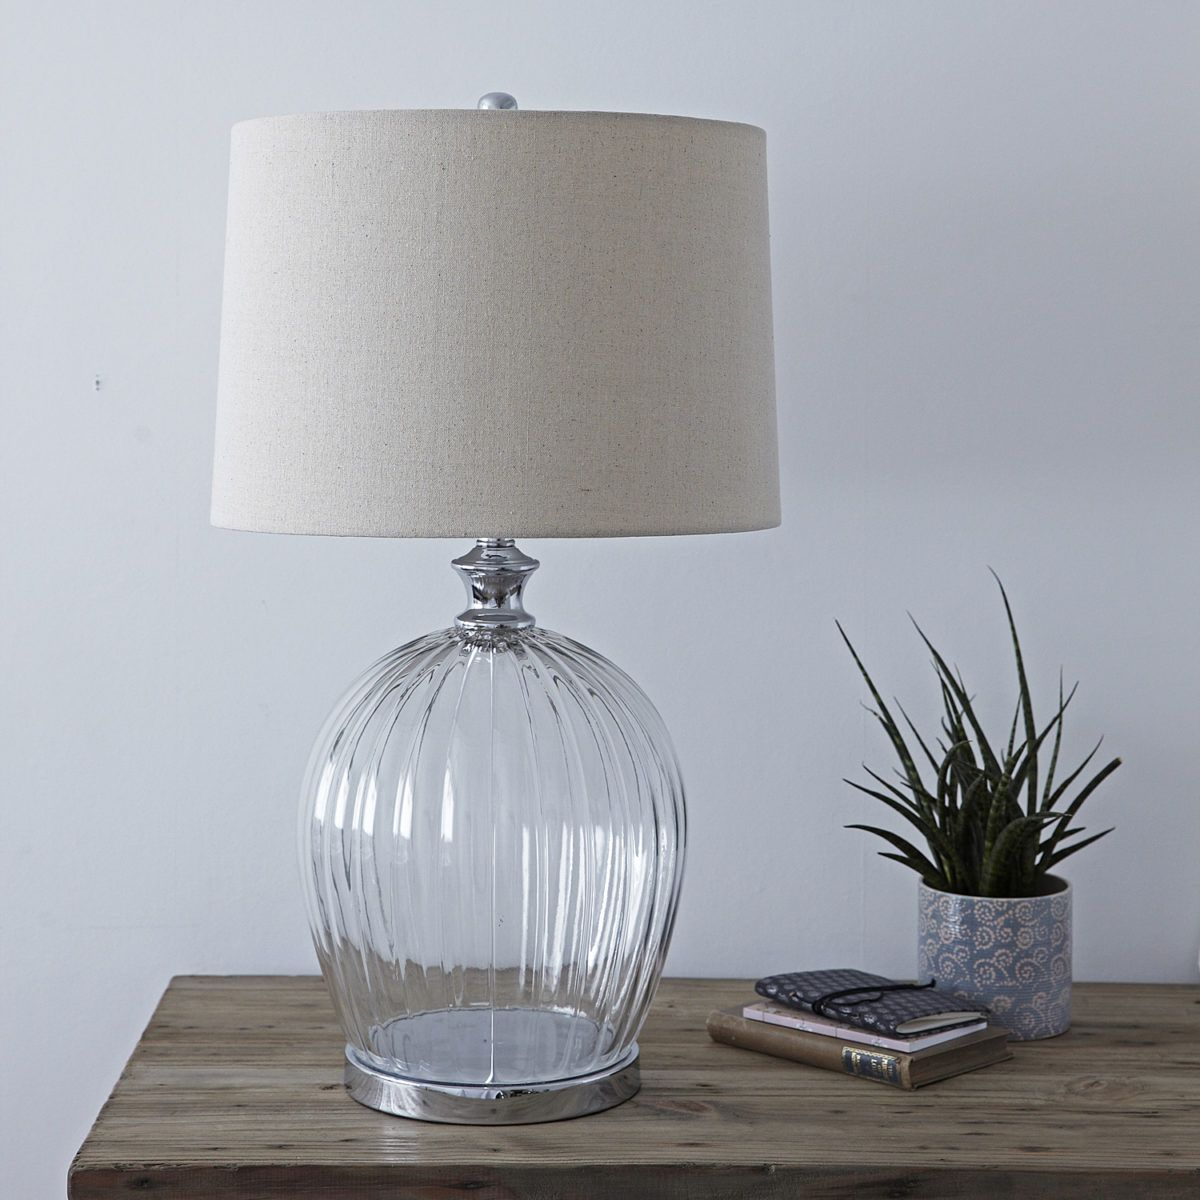 Ribbed Glass Table Lamp With Natural Shade With Images Glass